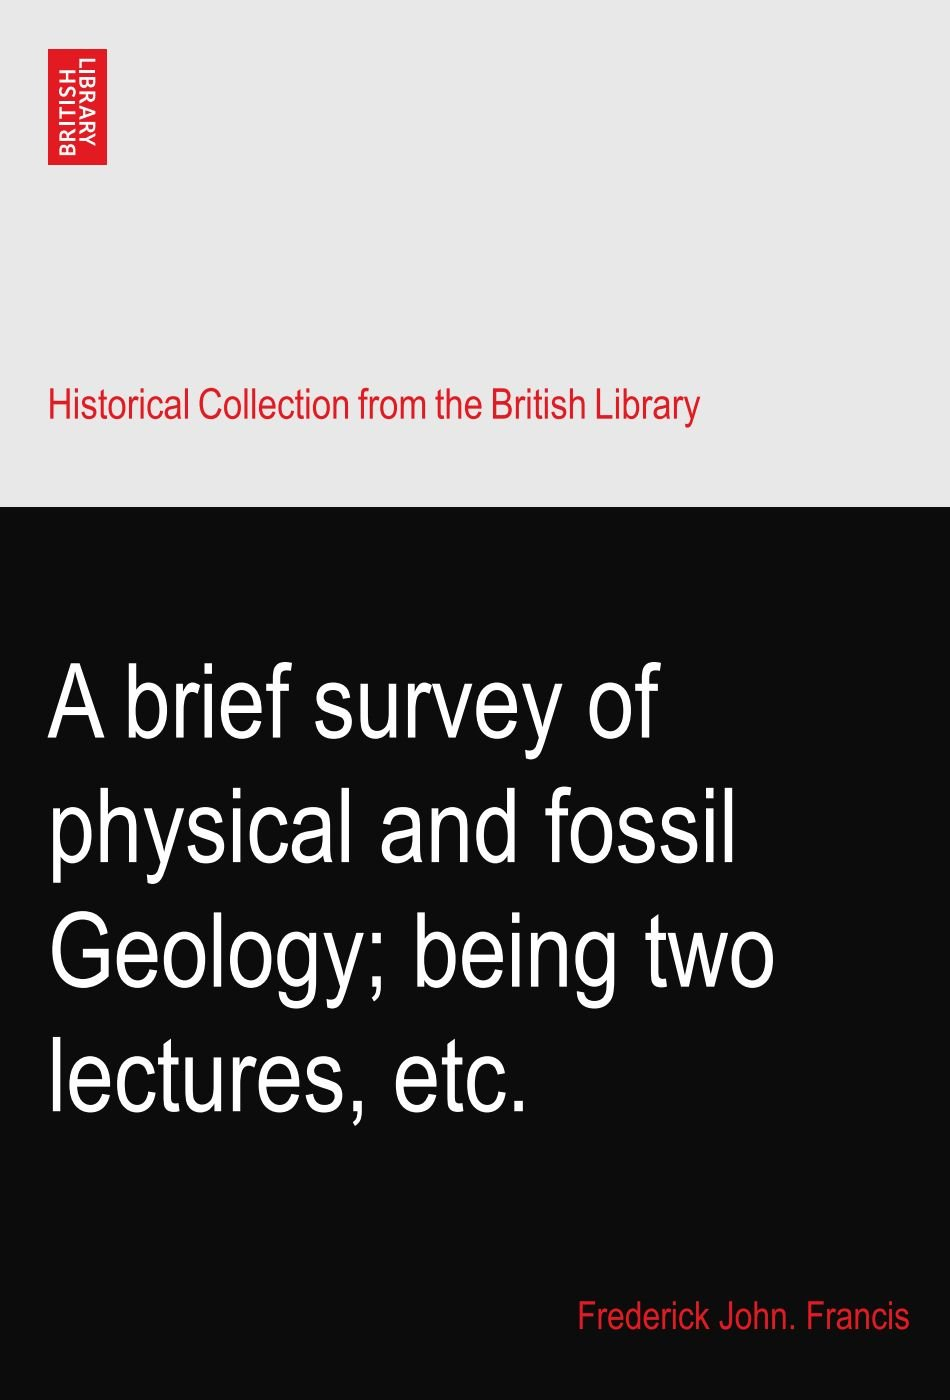 A brief survey of physical and fossil Geology; being two lectures, etc.